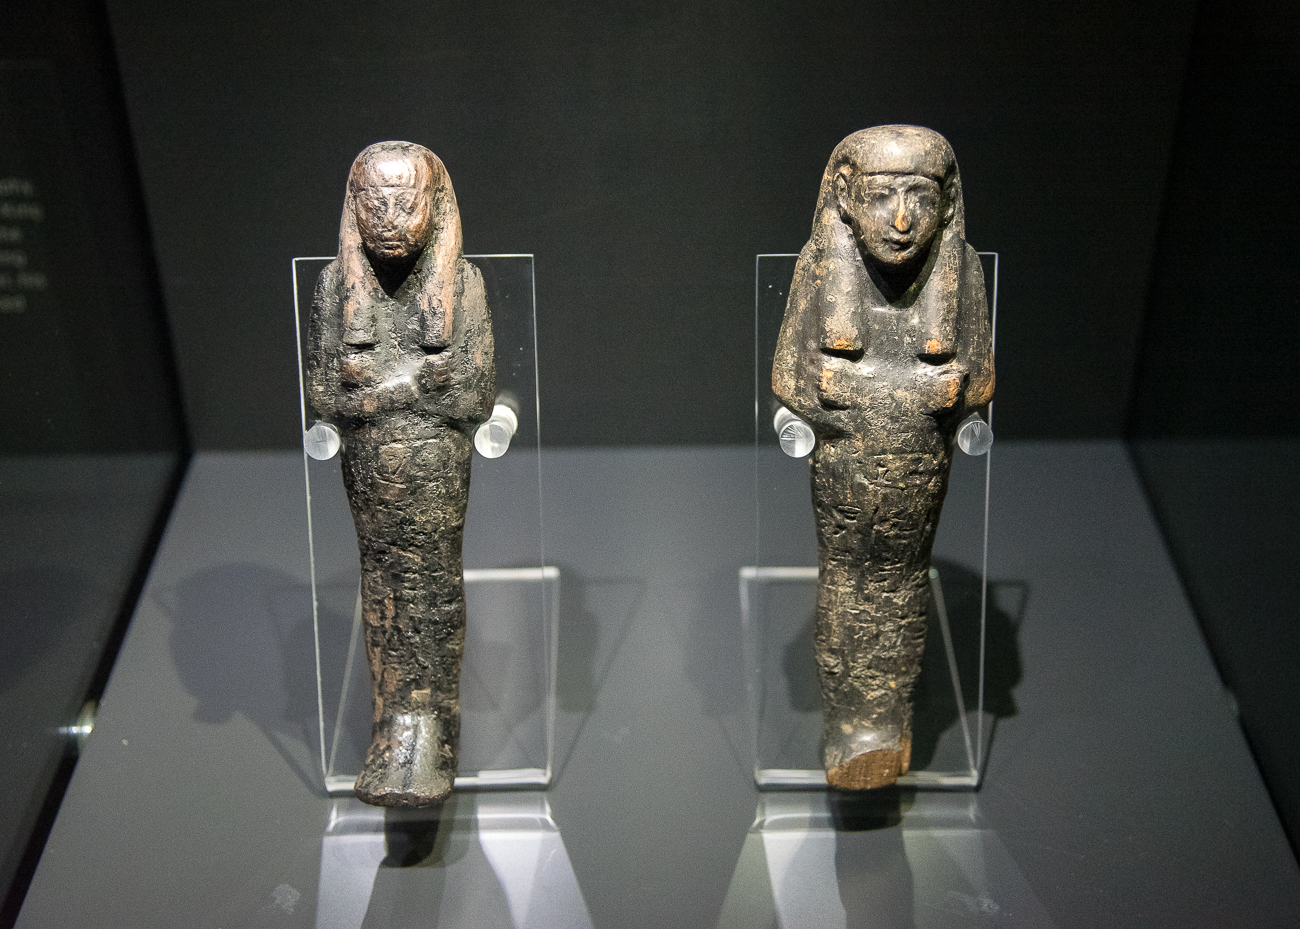 Two wooden funerary figures from 1290 to 1279 BC / Image: Phil Armstrong, Cincinnati Refined // Published: 2.15.19